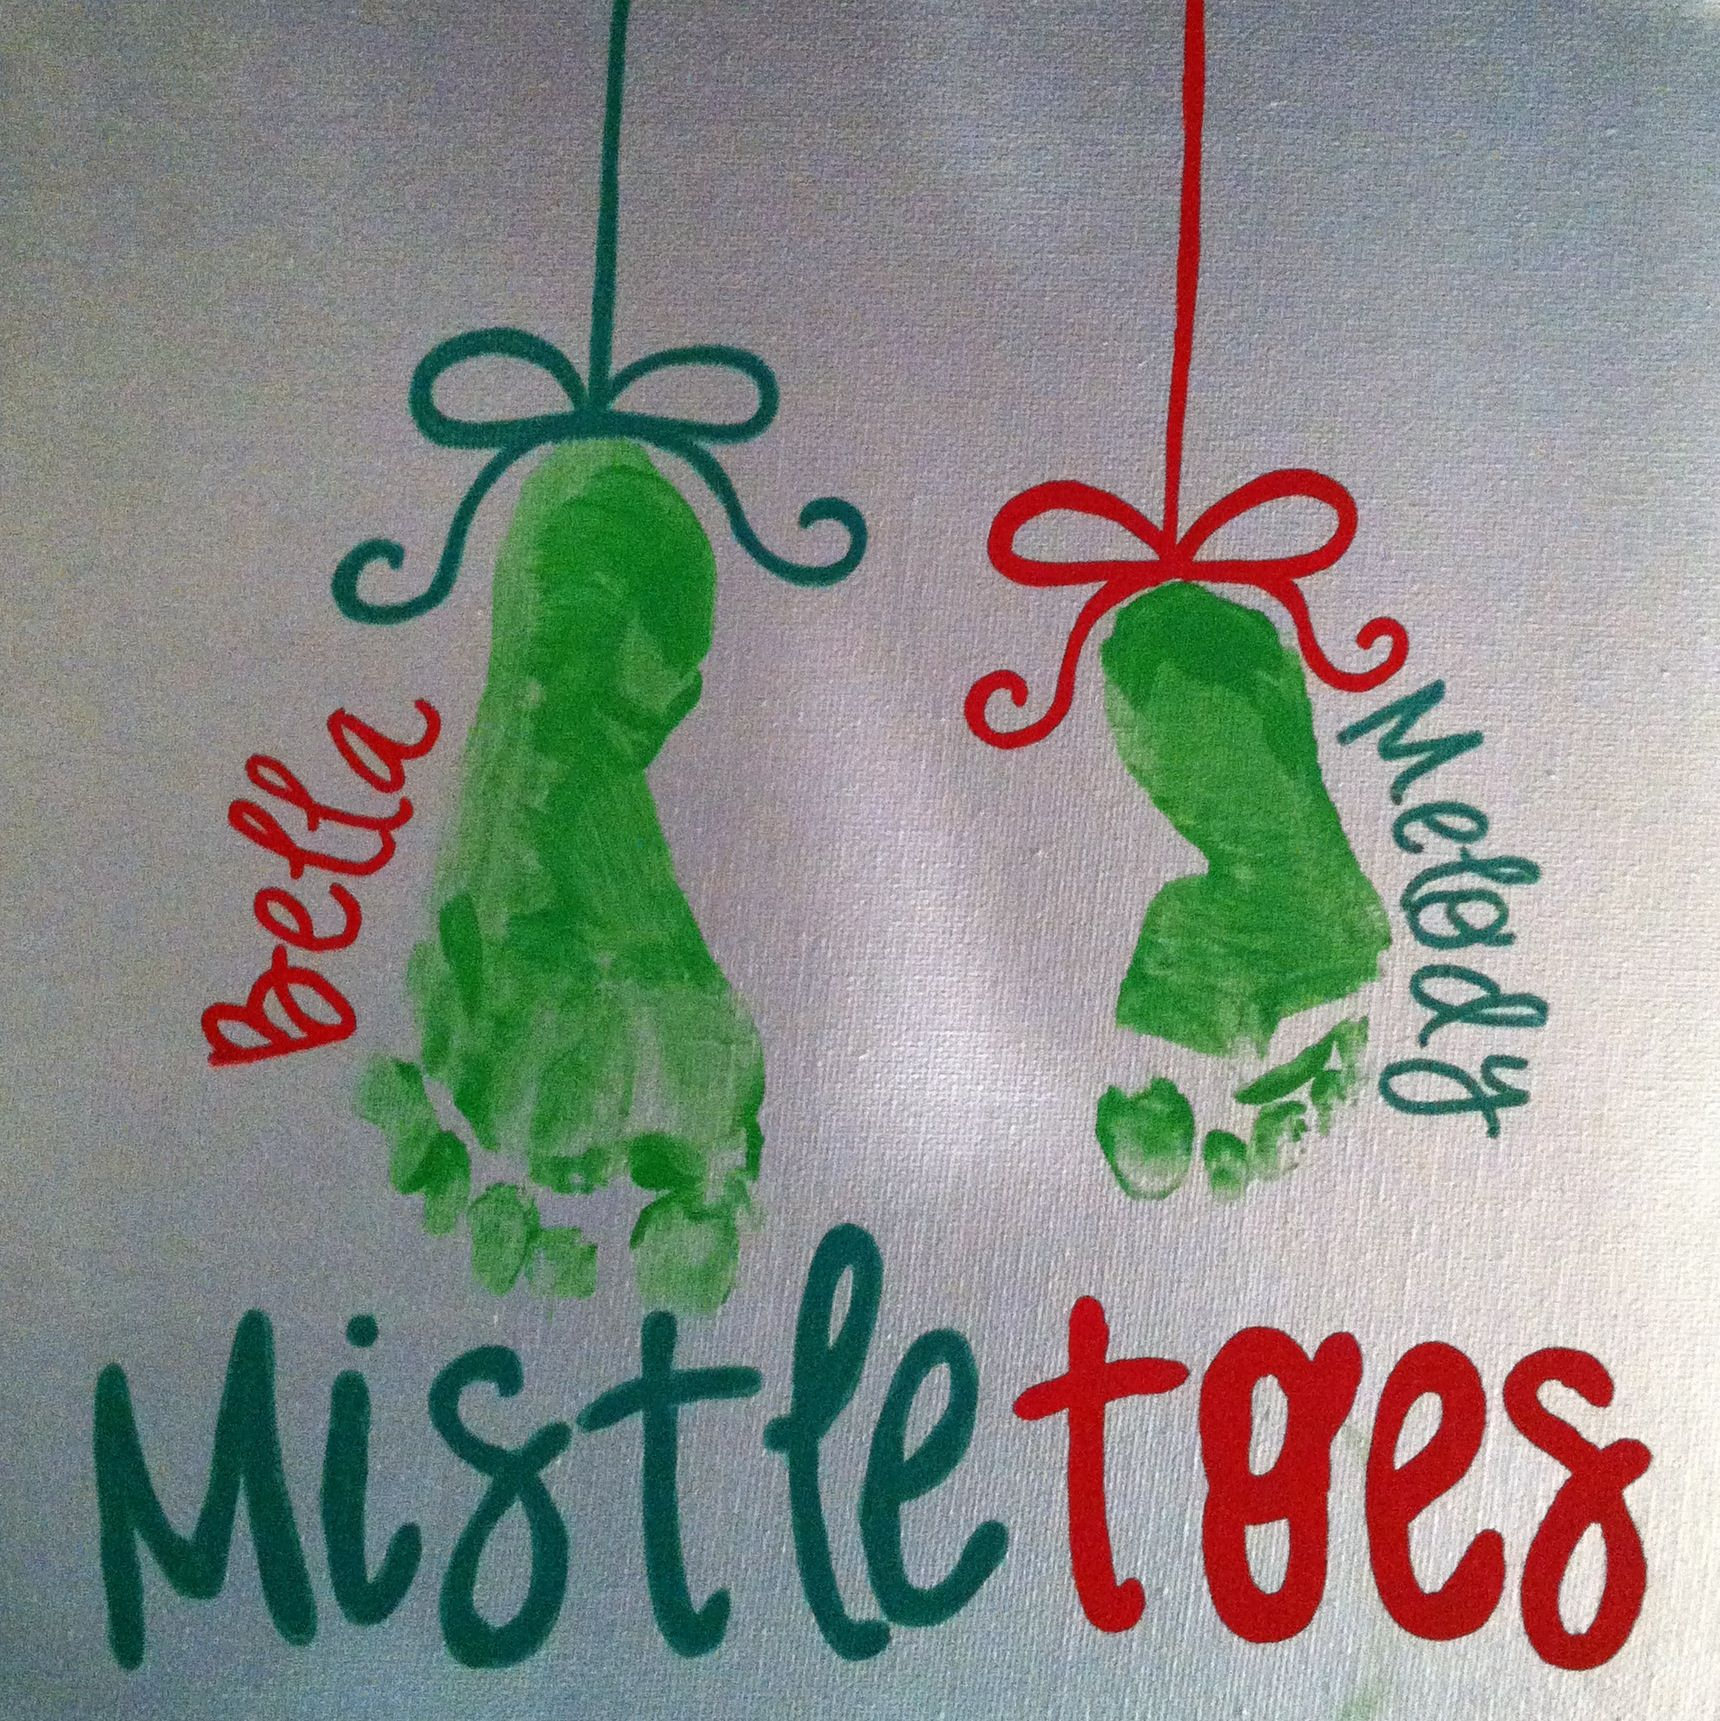 Christmas mistletoe foot prints #mistletoesfootprintcraft